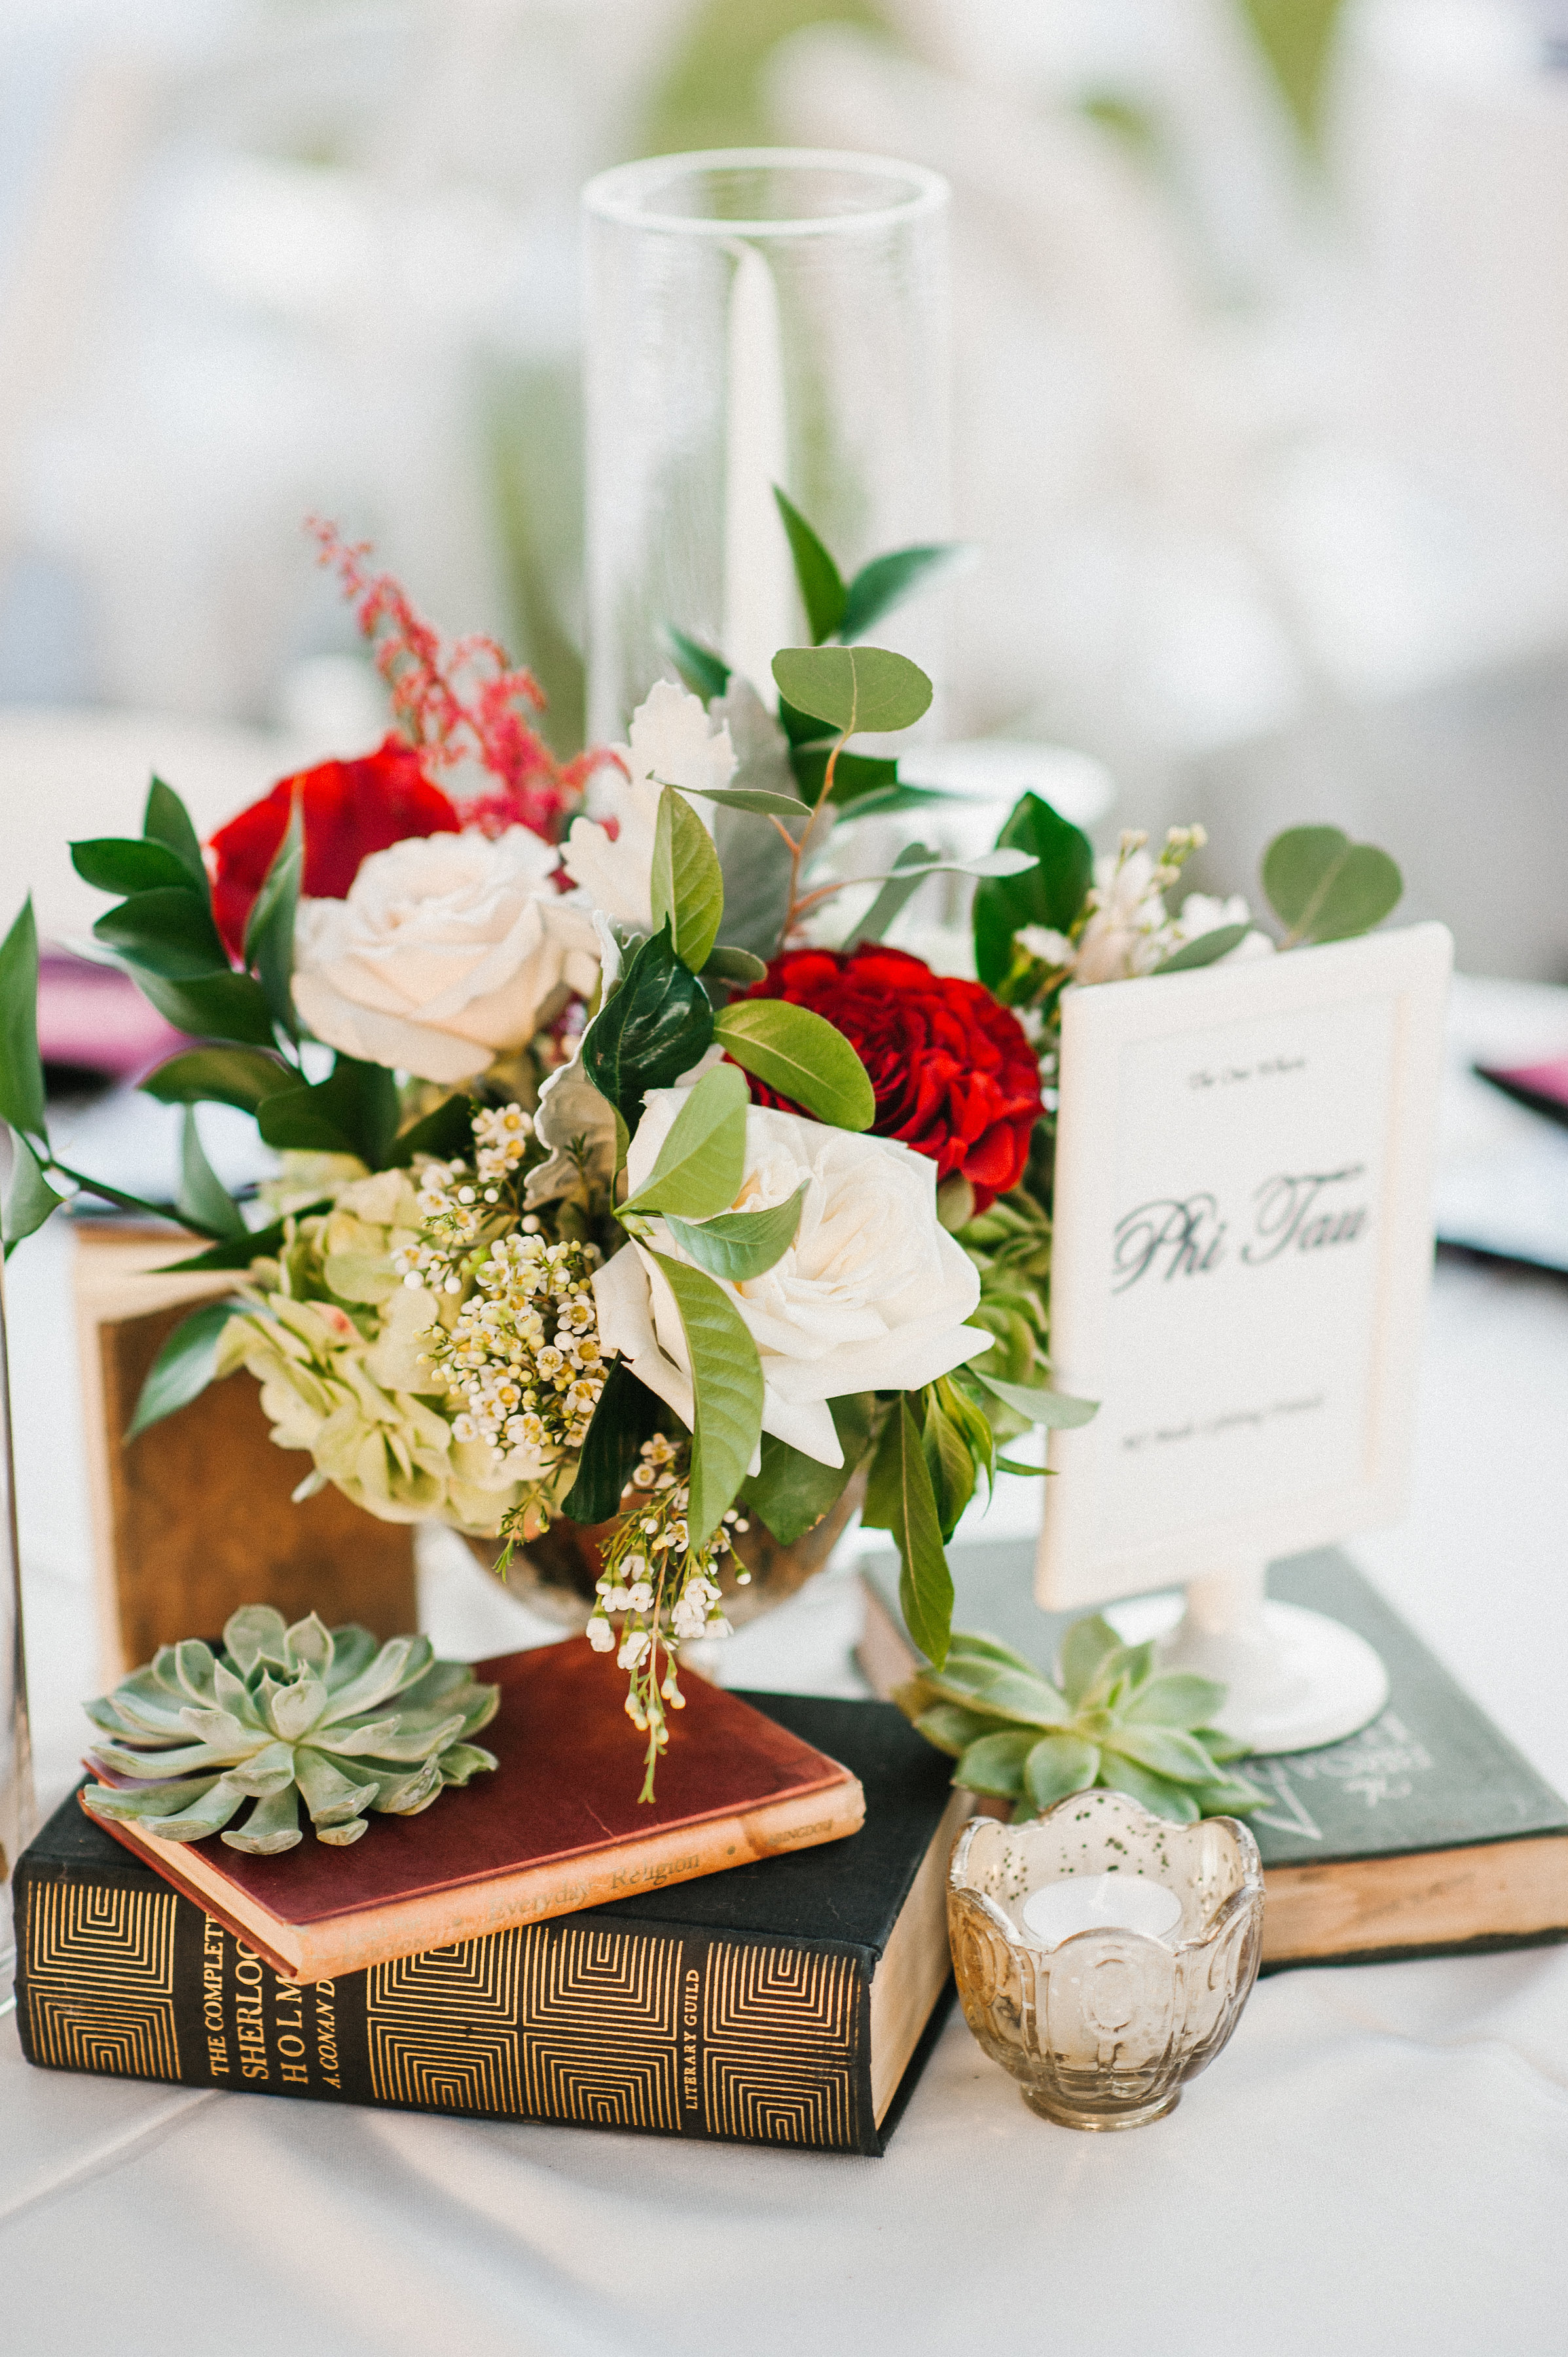 Bold reds and dark greens popped against the white table linens,accented with gold mercury glass and gold candle holders.